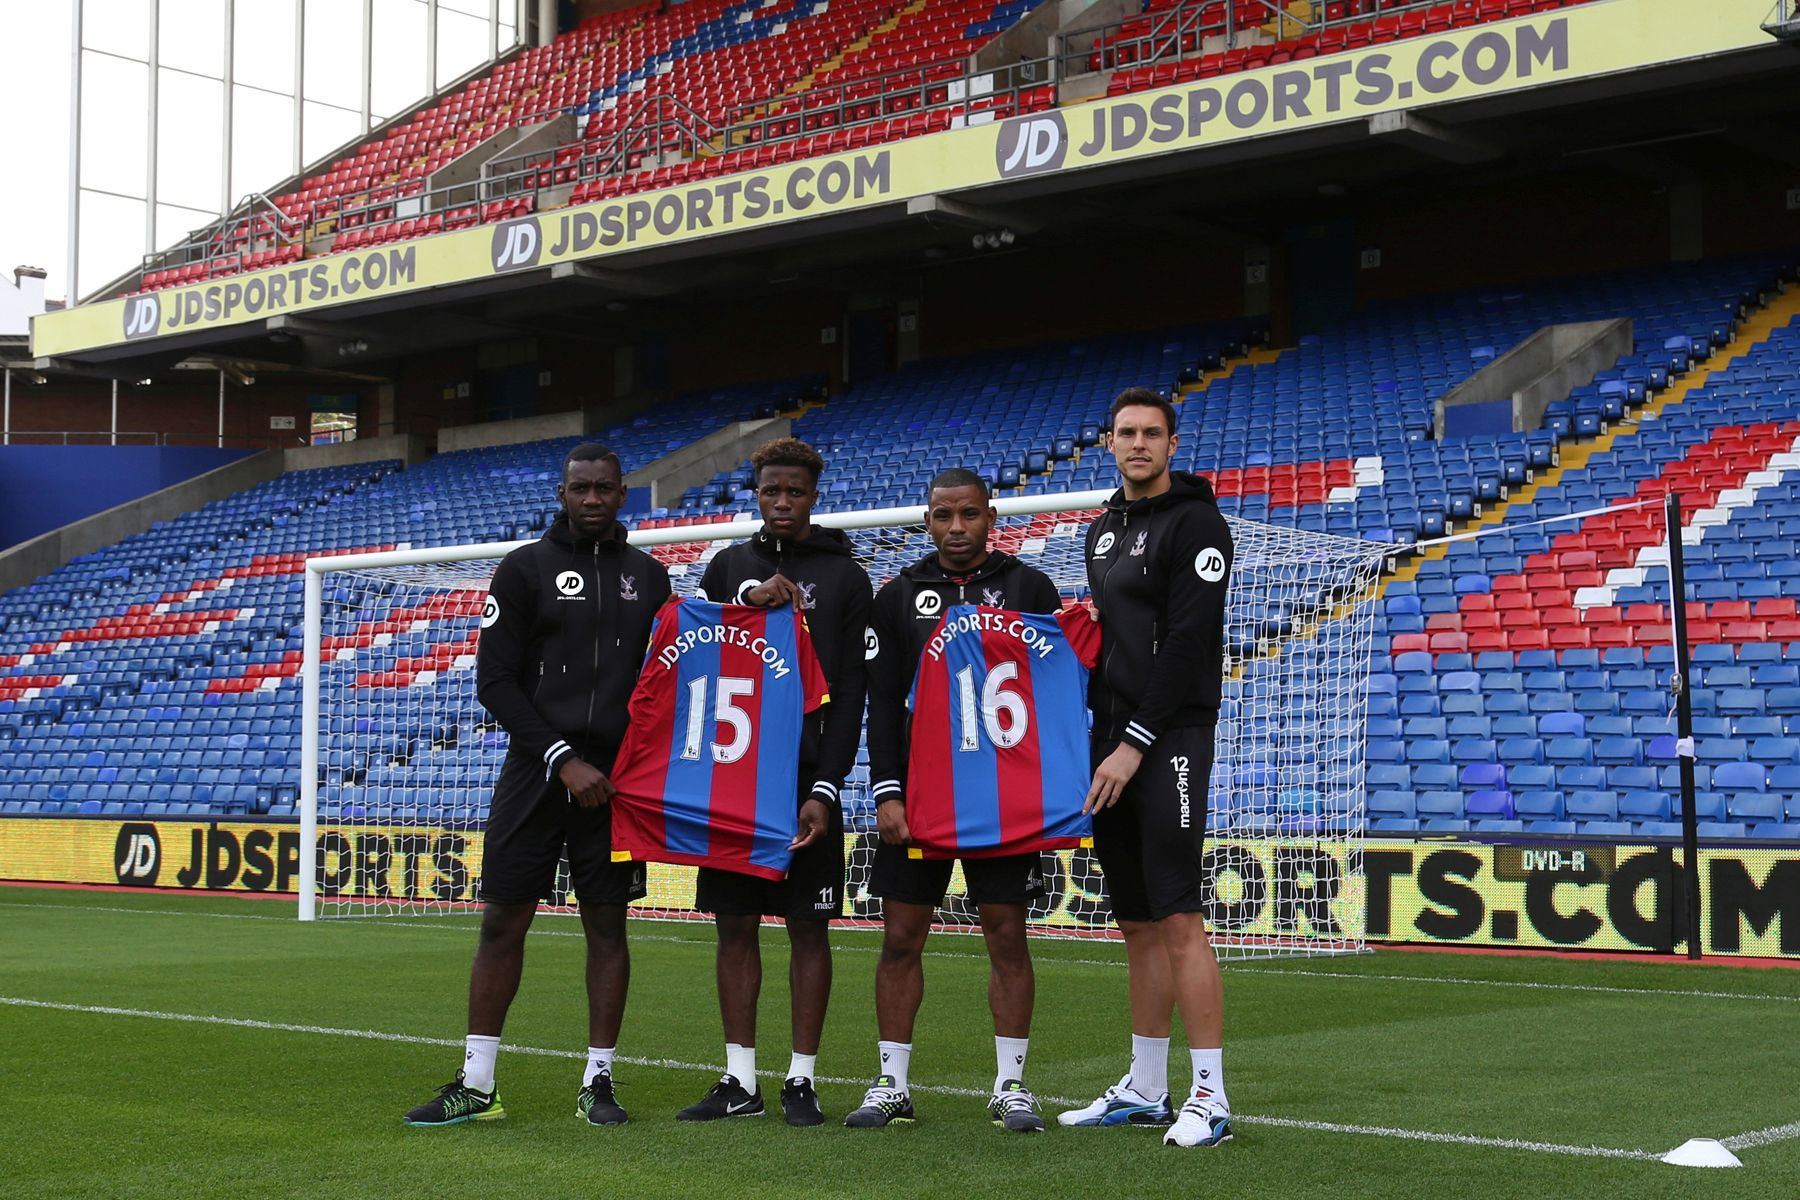 Crystal-Palace-and-JD-Stadium-Partner-Launch-Main